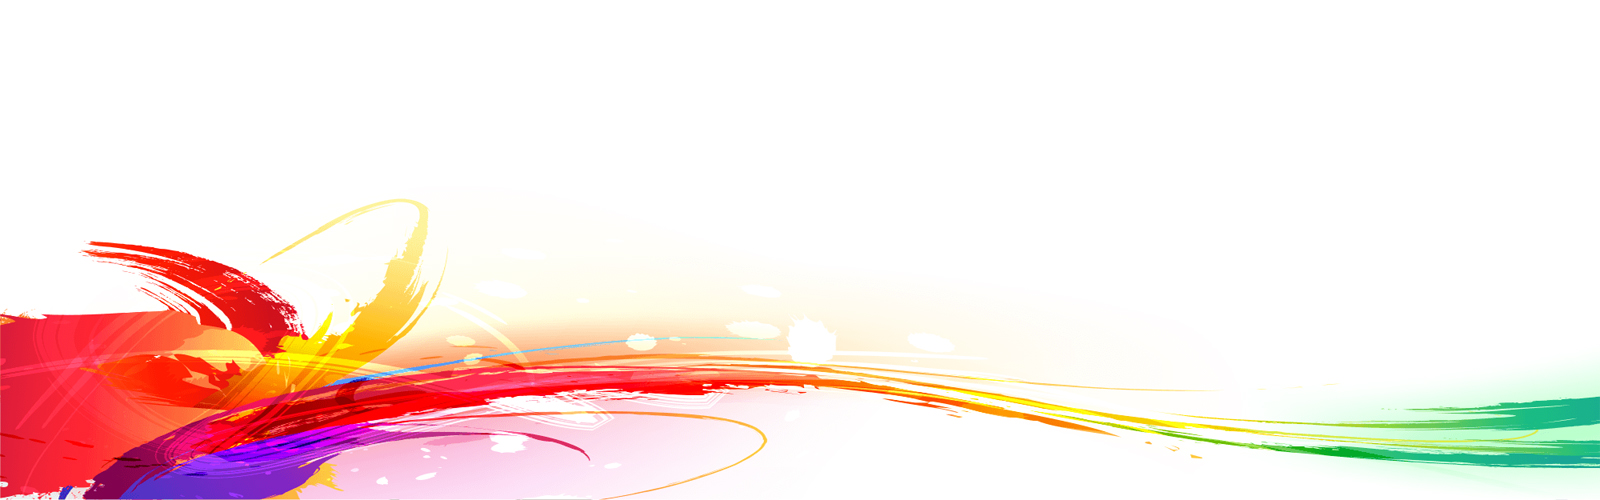 background banner design png 7 - Designing PNG HD